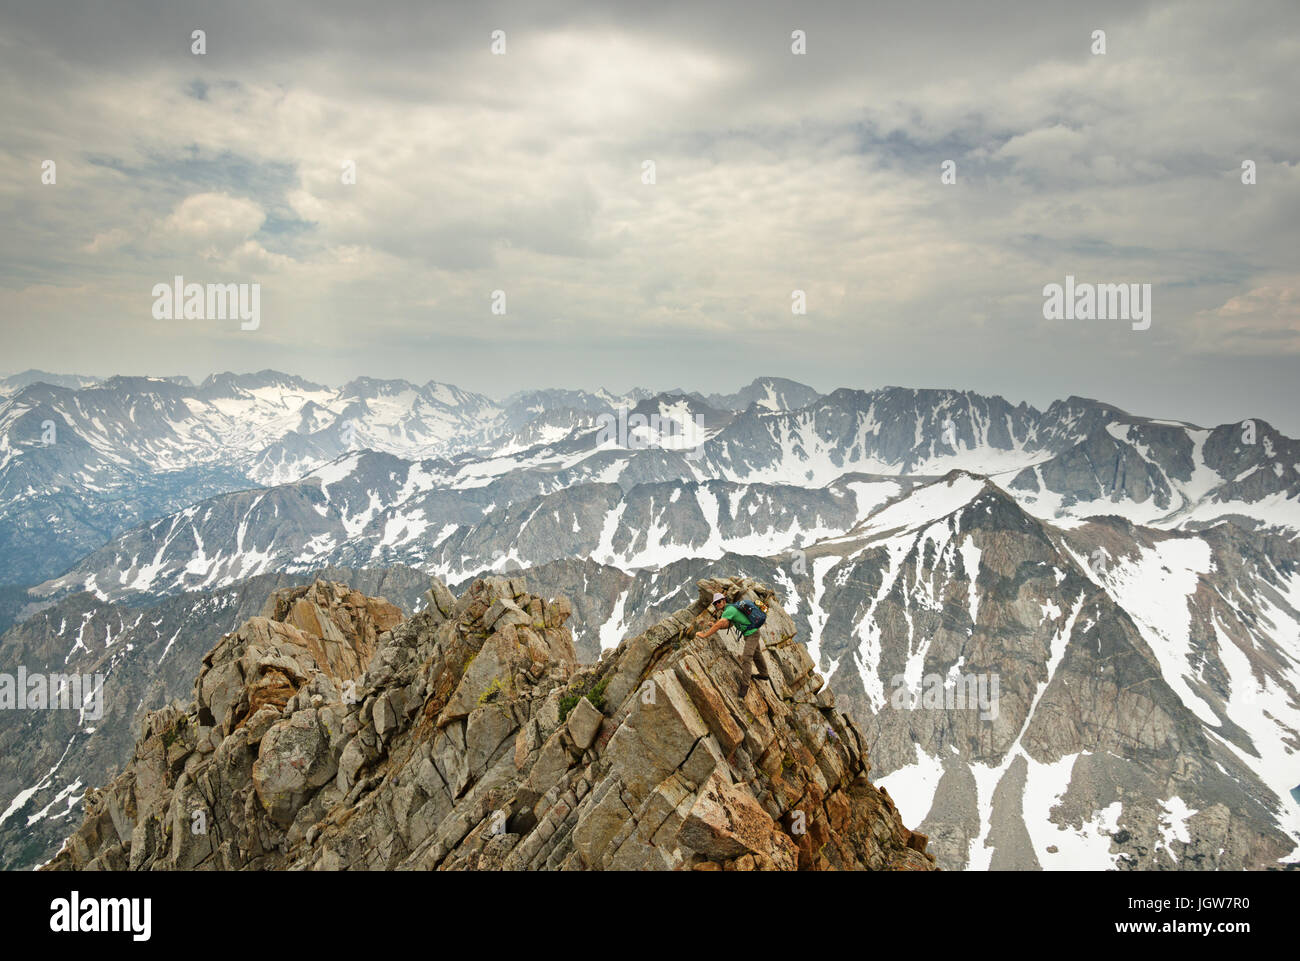 a man in the distance climbing the ridge of Mount Emerson in the Sierra Nevada Mountains - Stock Image